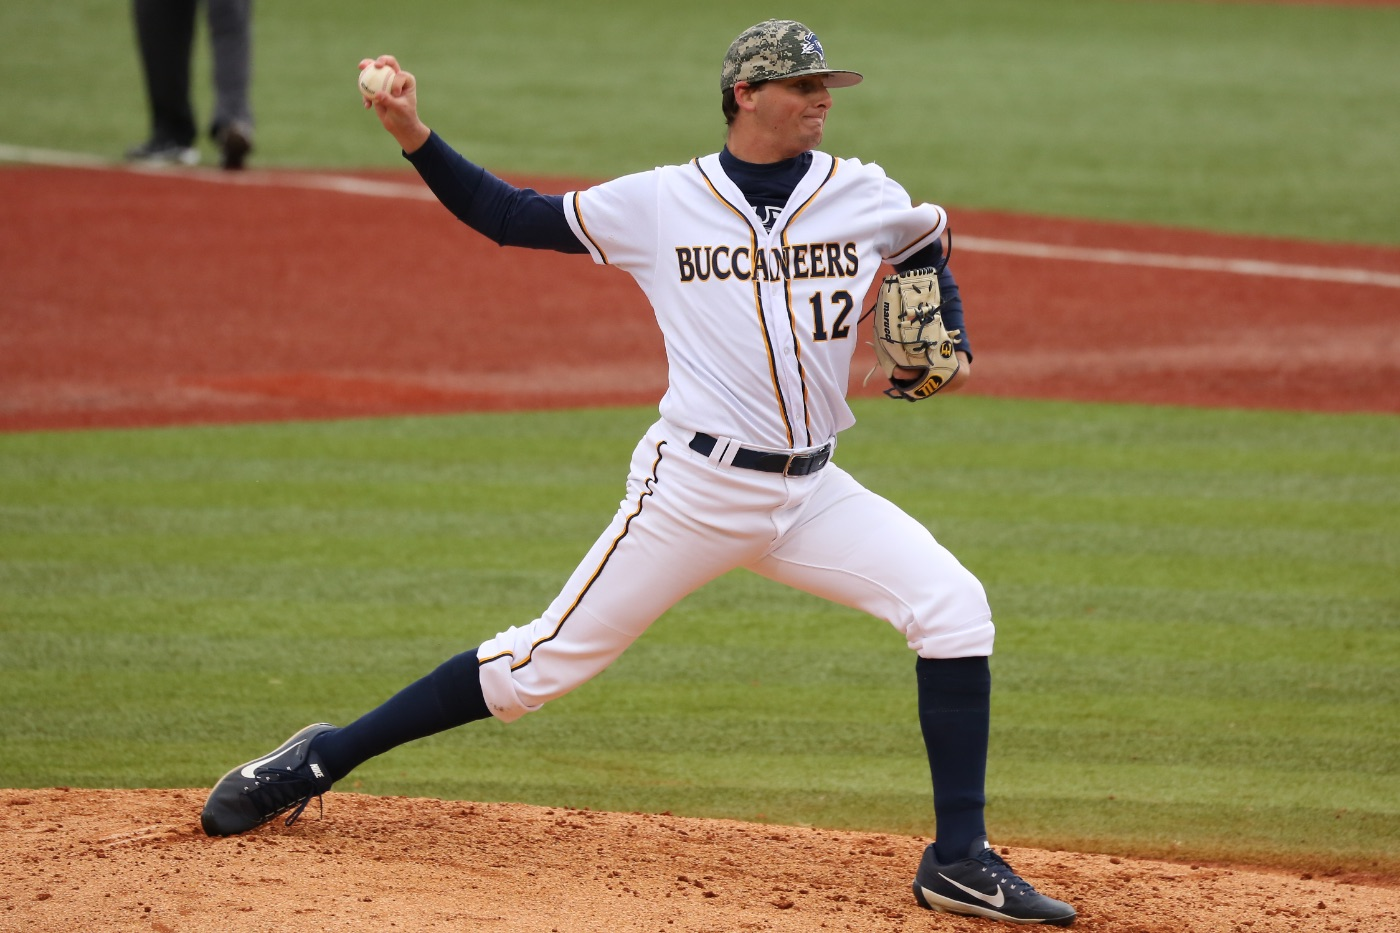 Comfortable Baseball Uniforms to Stay Players Relaxed While Playing